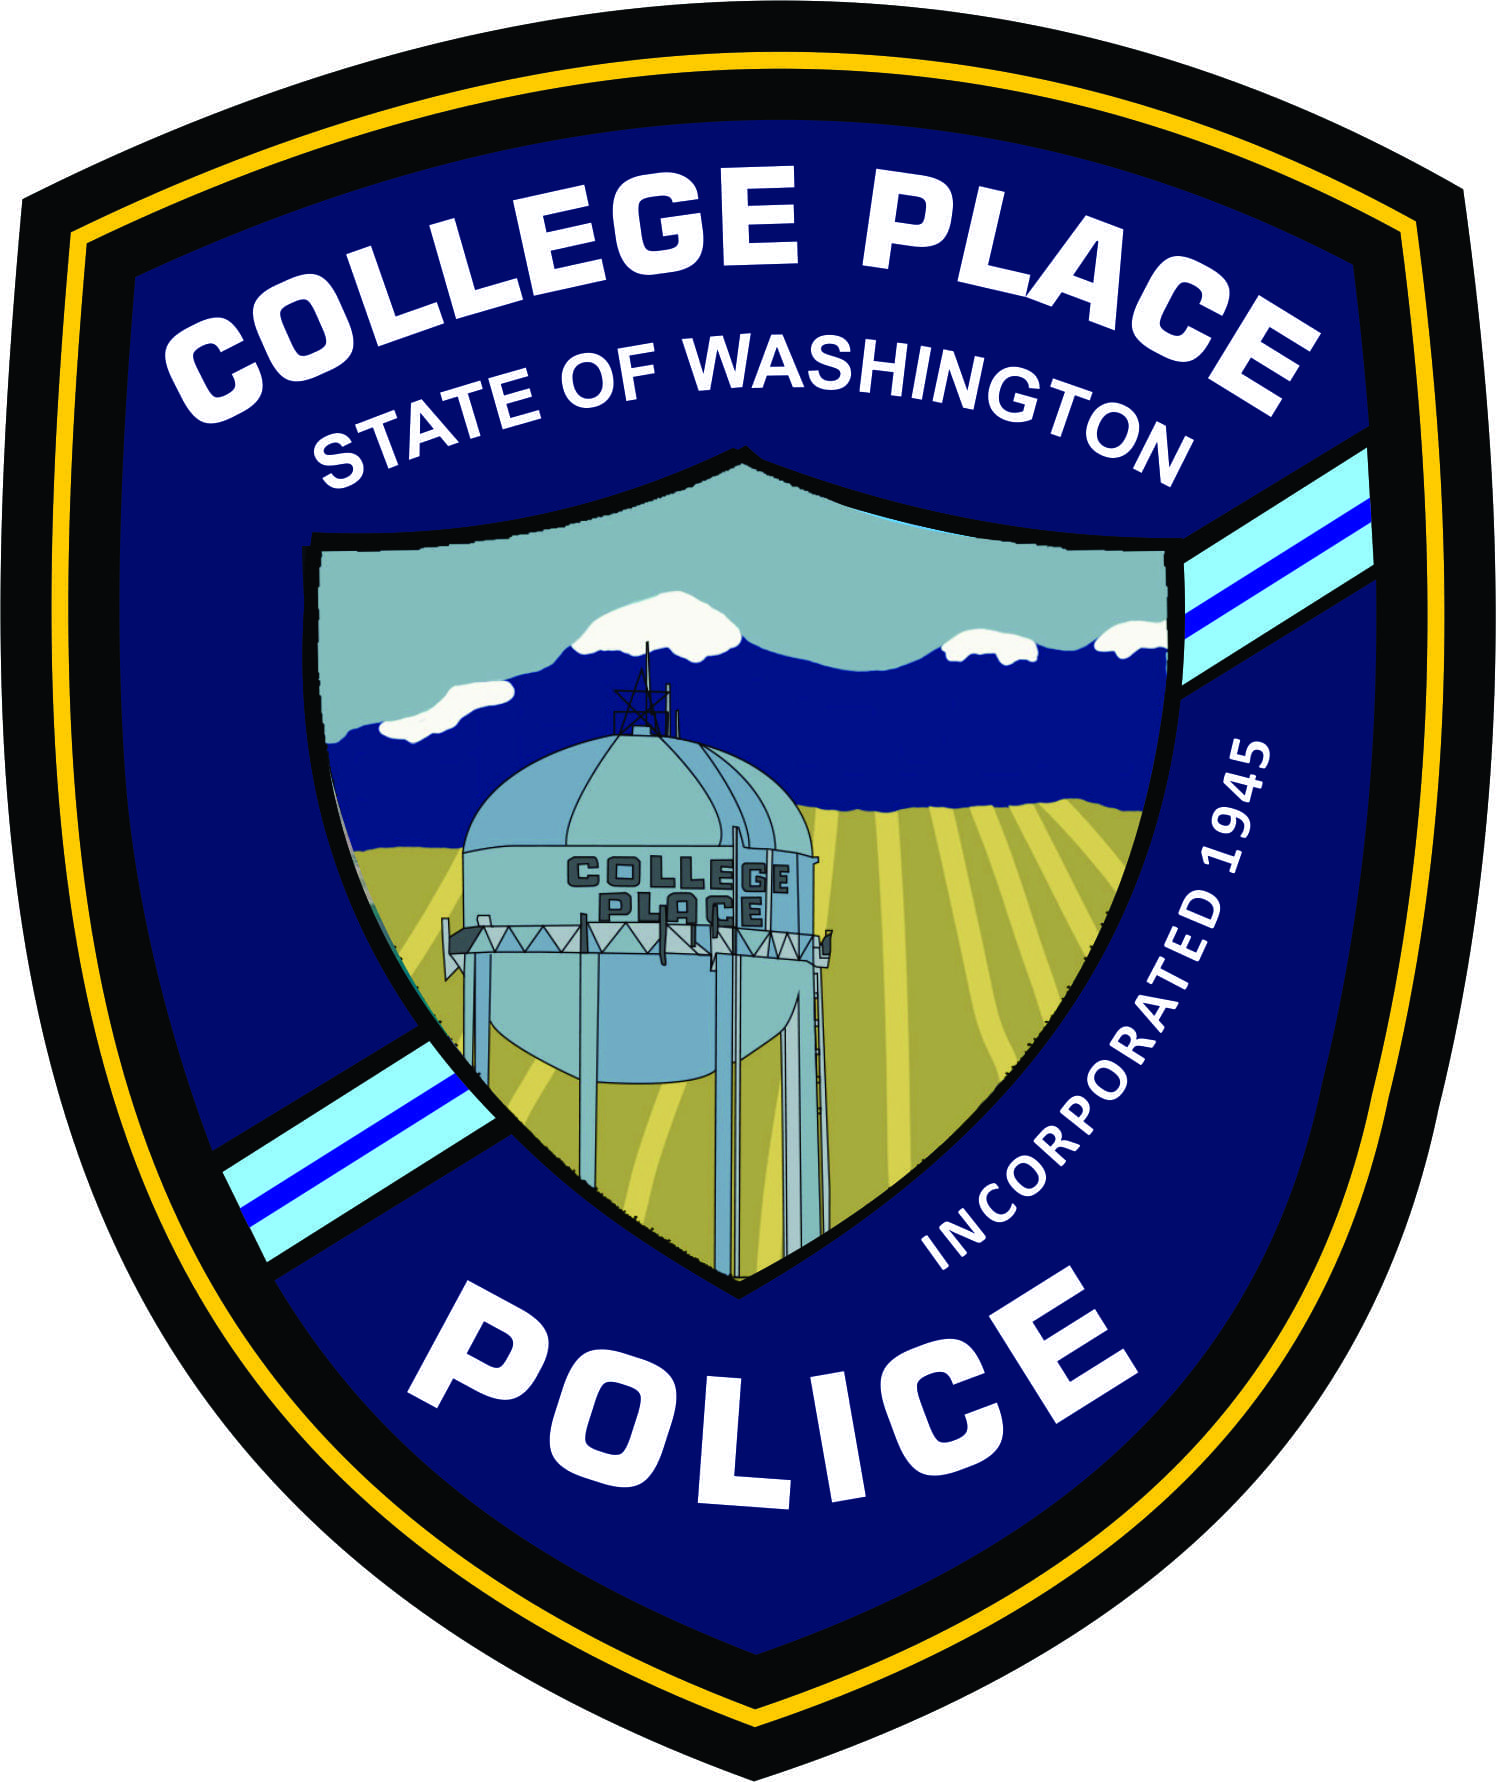 Police investigating two burglaries in College Place